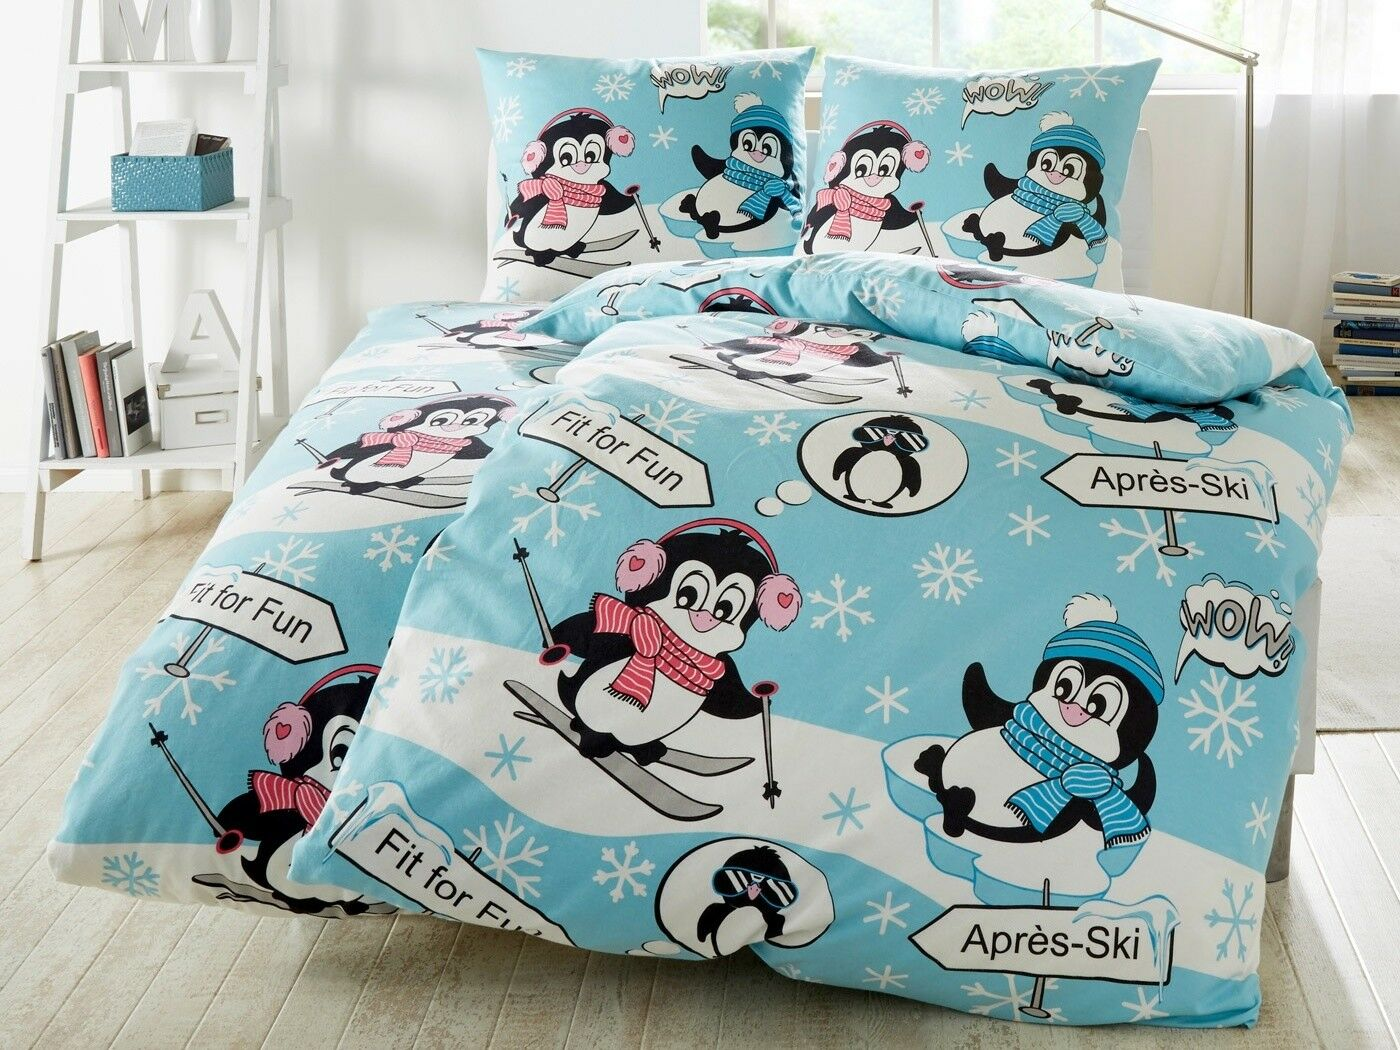 Bettwäsche Pinguin Biber 135x200 hellblau Baumwolle Winter Apres Ski Fit for Fun